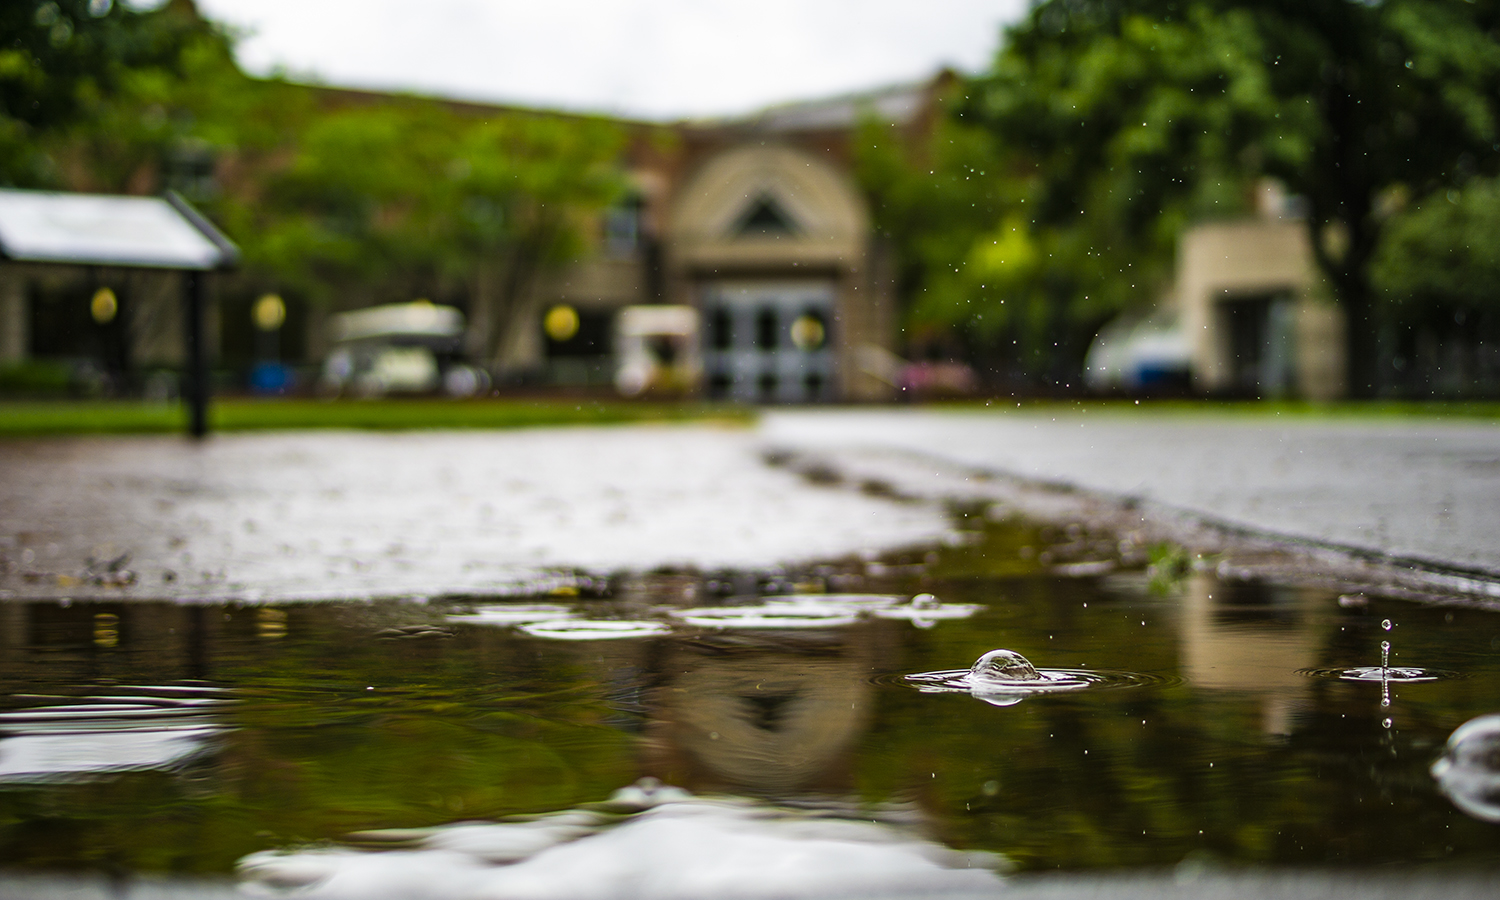 On a rainy day, puddles form on the path to the Scandling Campus Center.